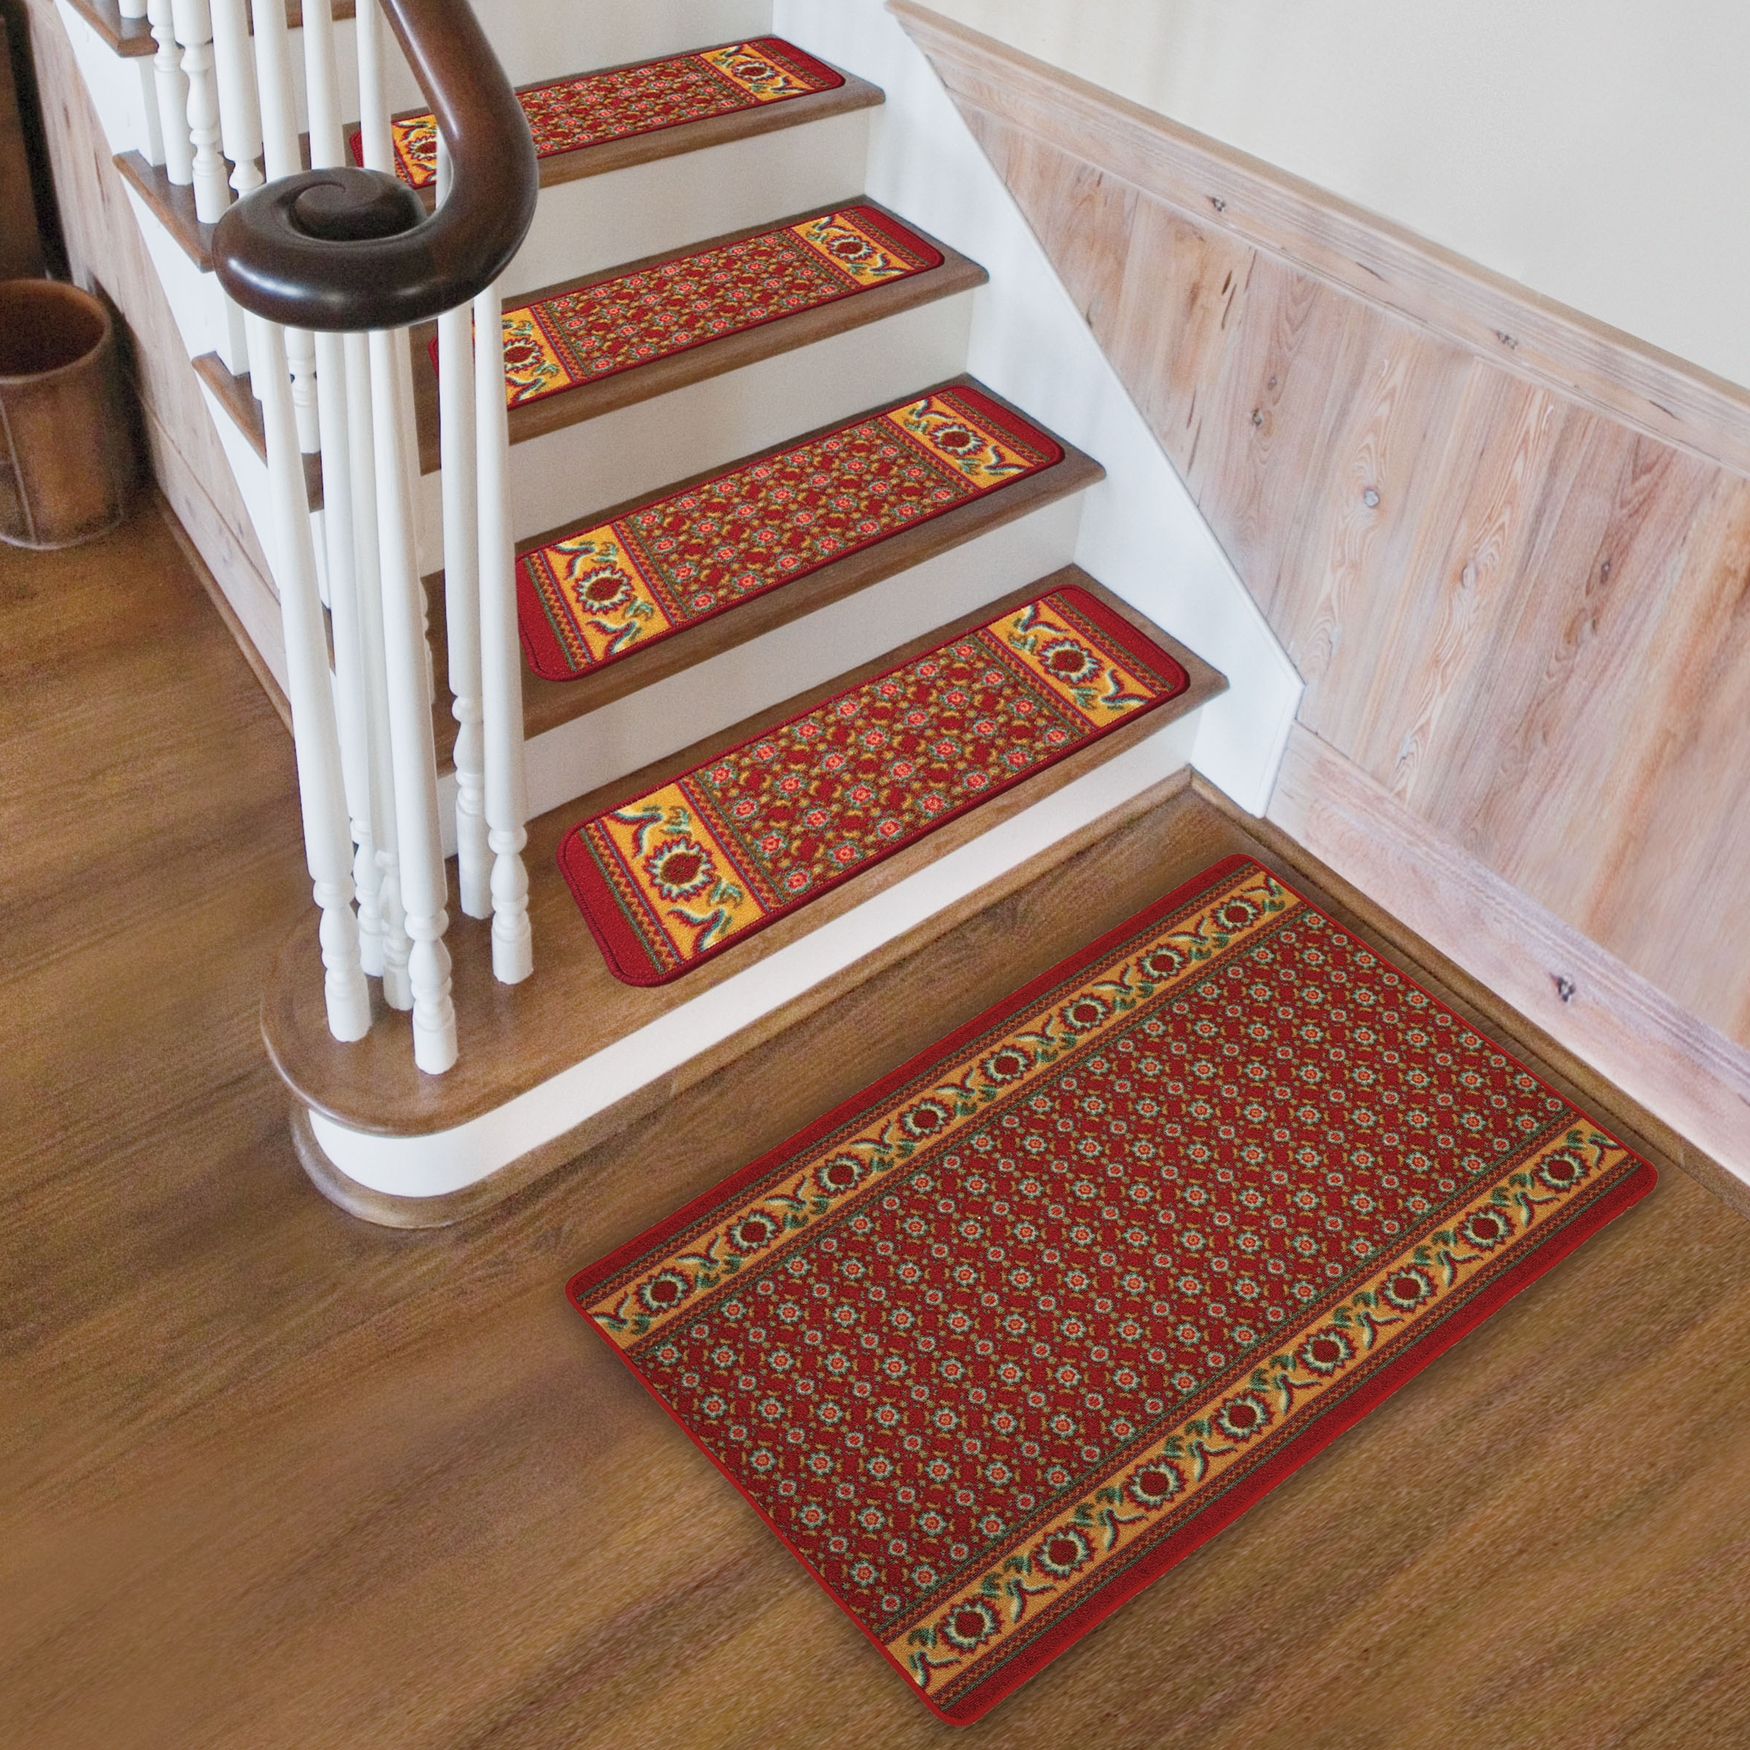 Rugs Carpet Stair Rug Carpet Stair Treads Regarding Stair Tread Rugs For Carpet (View 13 of 20)